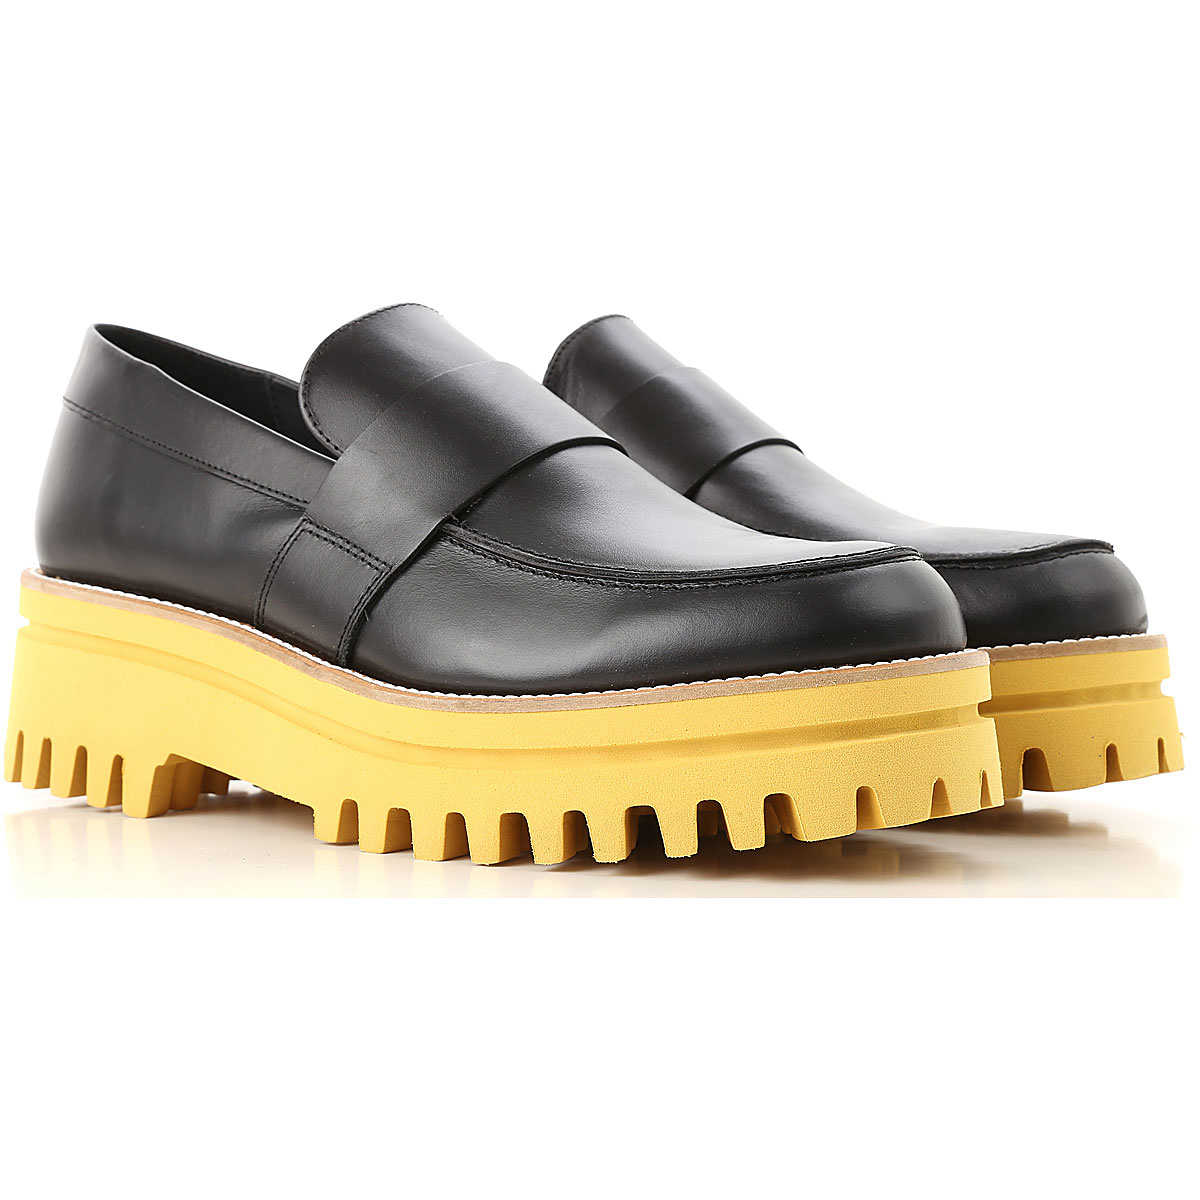 Paloma Barcelo Loafers for Women On Sale Black DK - GOOFASH - Womens FLAT SHOES